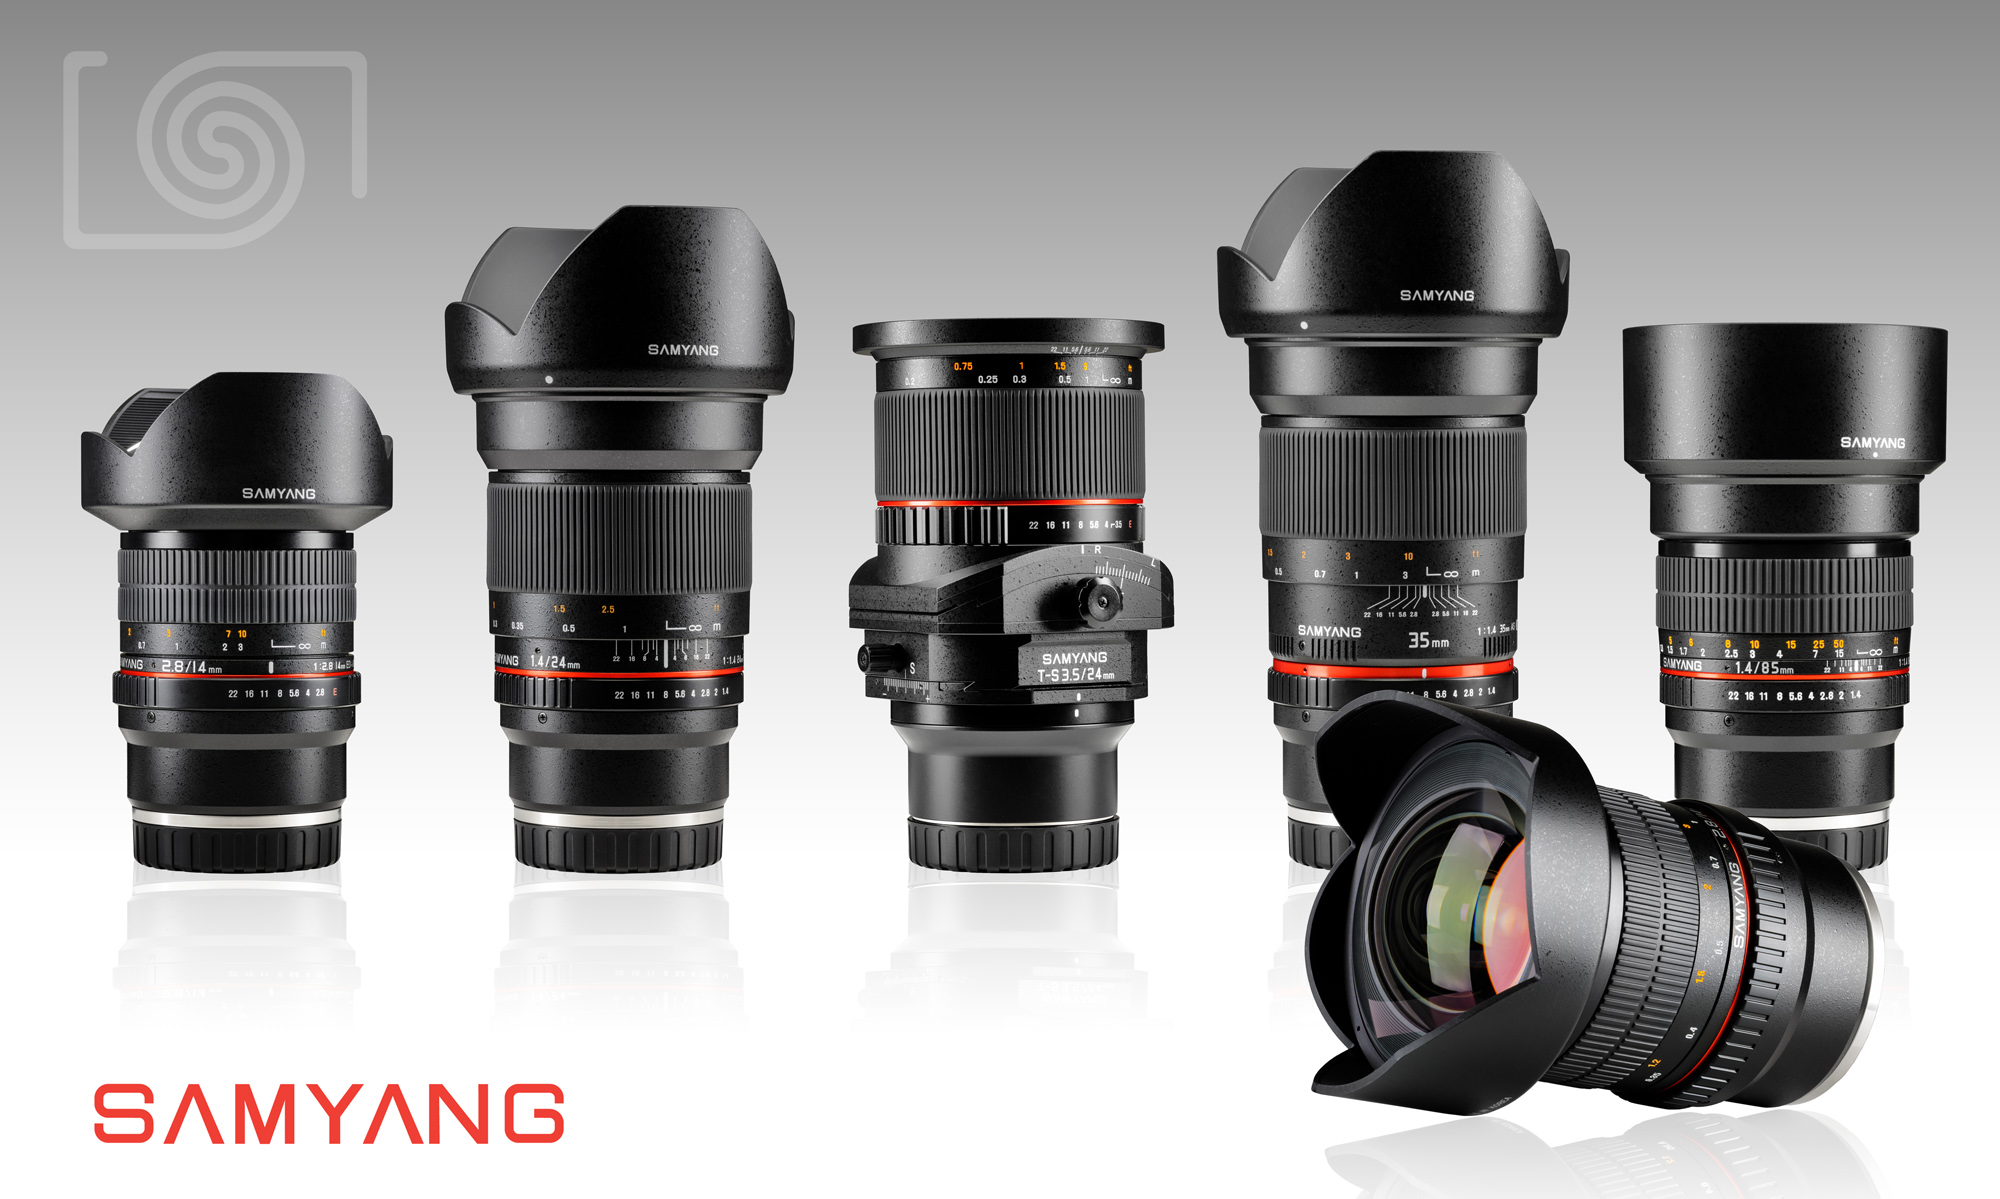 samyang full frame lenses with sony e mount